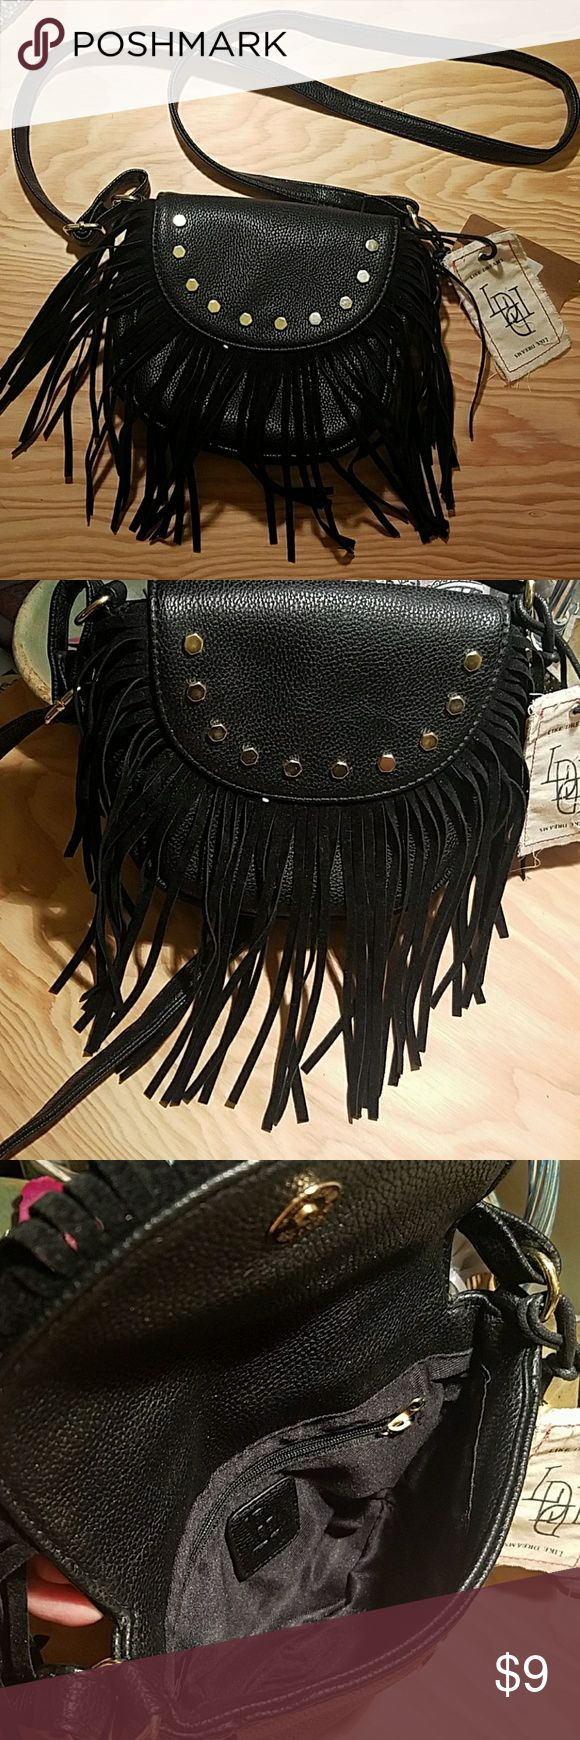 """Black Fringe Purse This perfect size purse is great for a night out, a concert, the fair or a festival. Faux leather with suede fringe this one pocket cross body bag will become your best friend! Accented with gold studs this brand new bag is ready to ship Dimensions: about 6"""" W x  5"""" high x 2"""" deep Magnetic button closure, one small zippered pocket inside the purse Like Dreams Bags Mini Bags"""